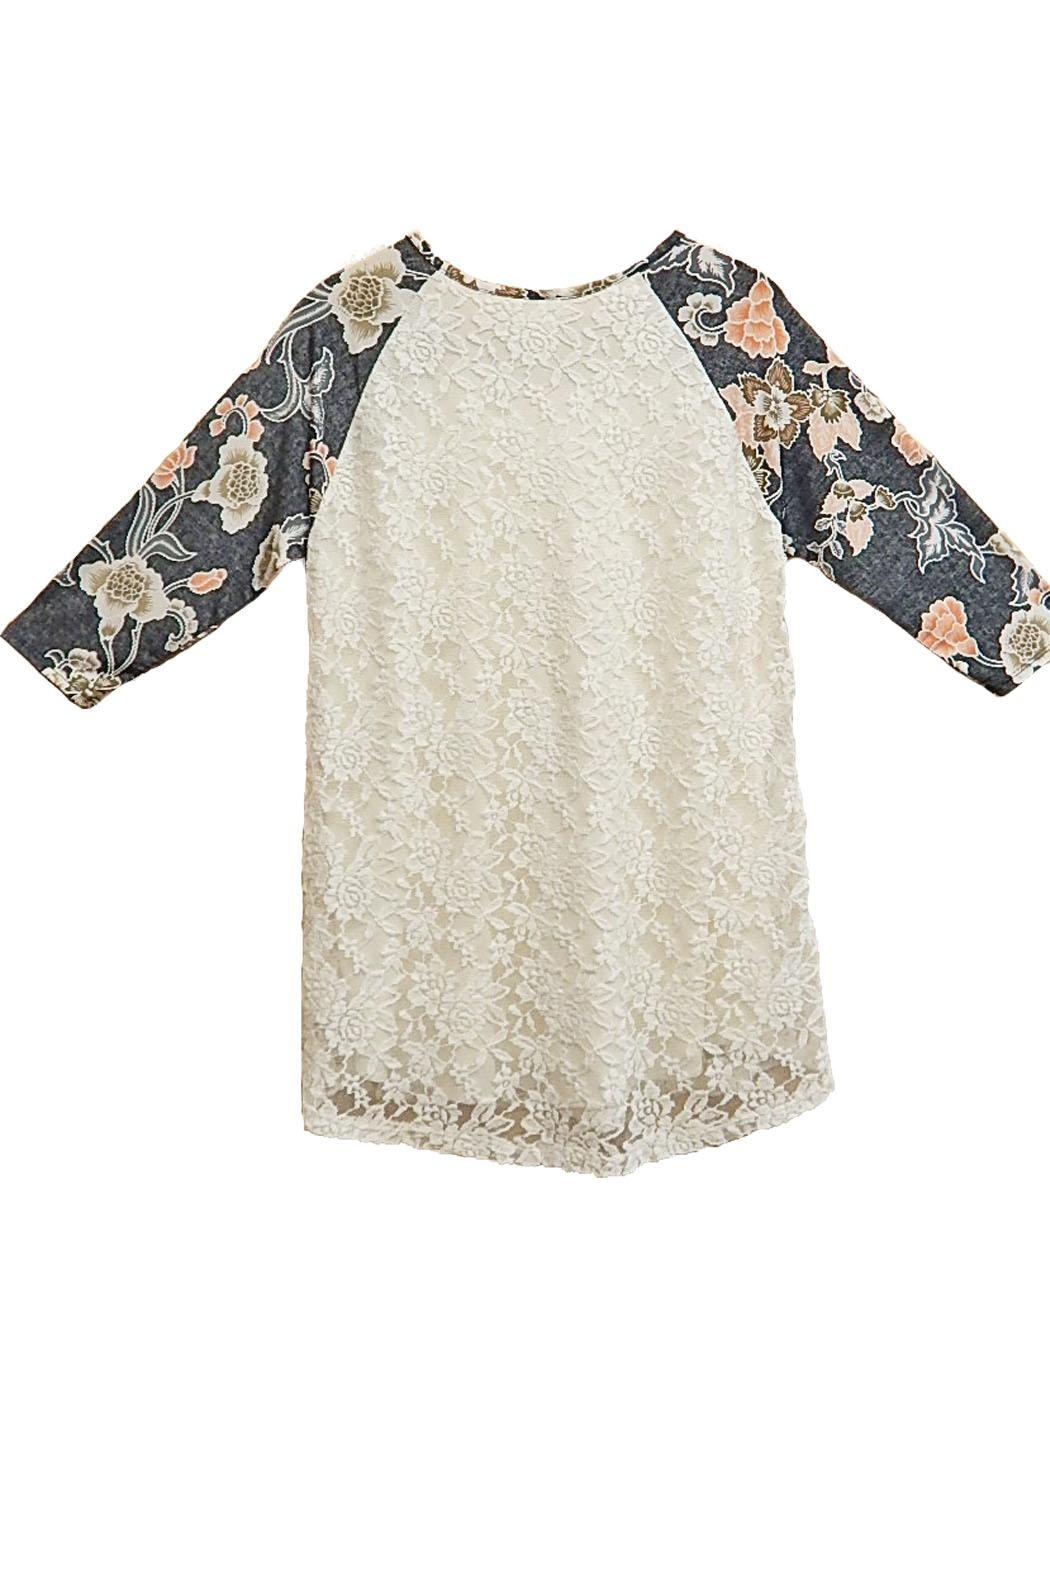 honeyme Gray Lace Top - Front Full Image